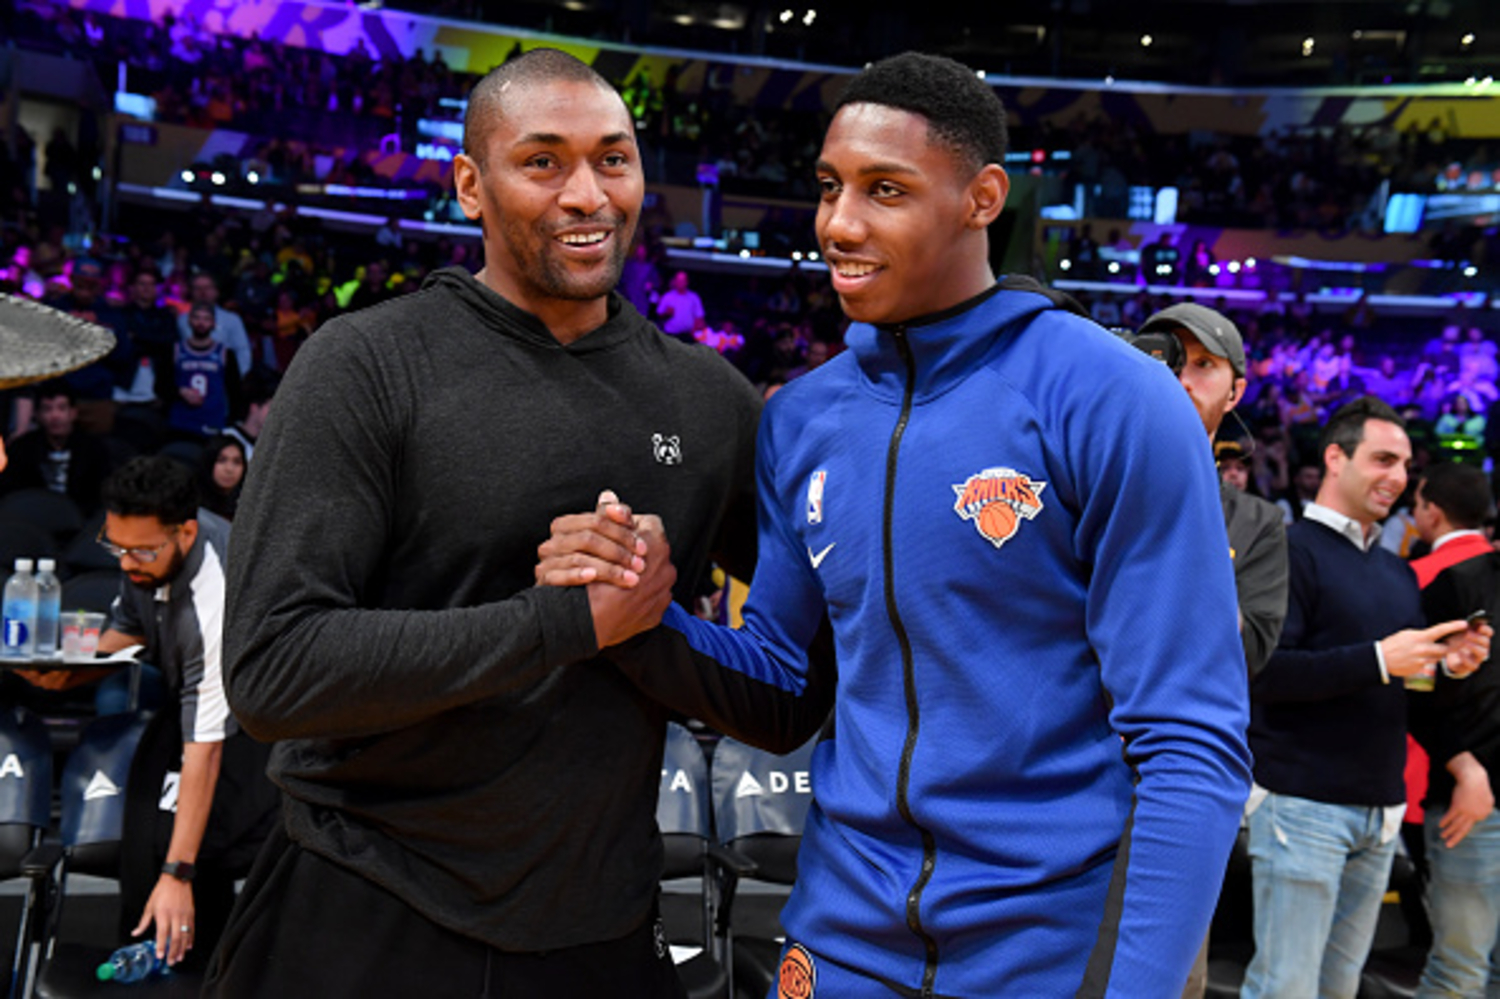 Metta World Peace was drafted by the Chicago Bulls but wanted to go to the New York Knicks